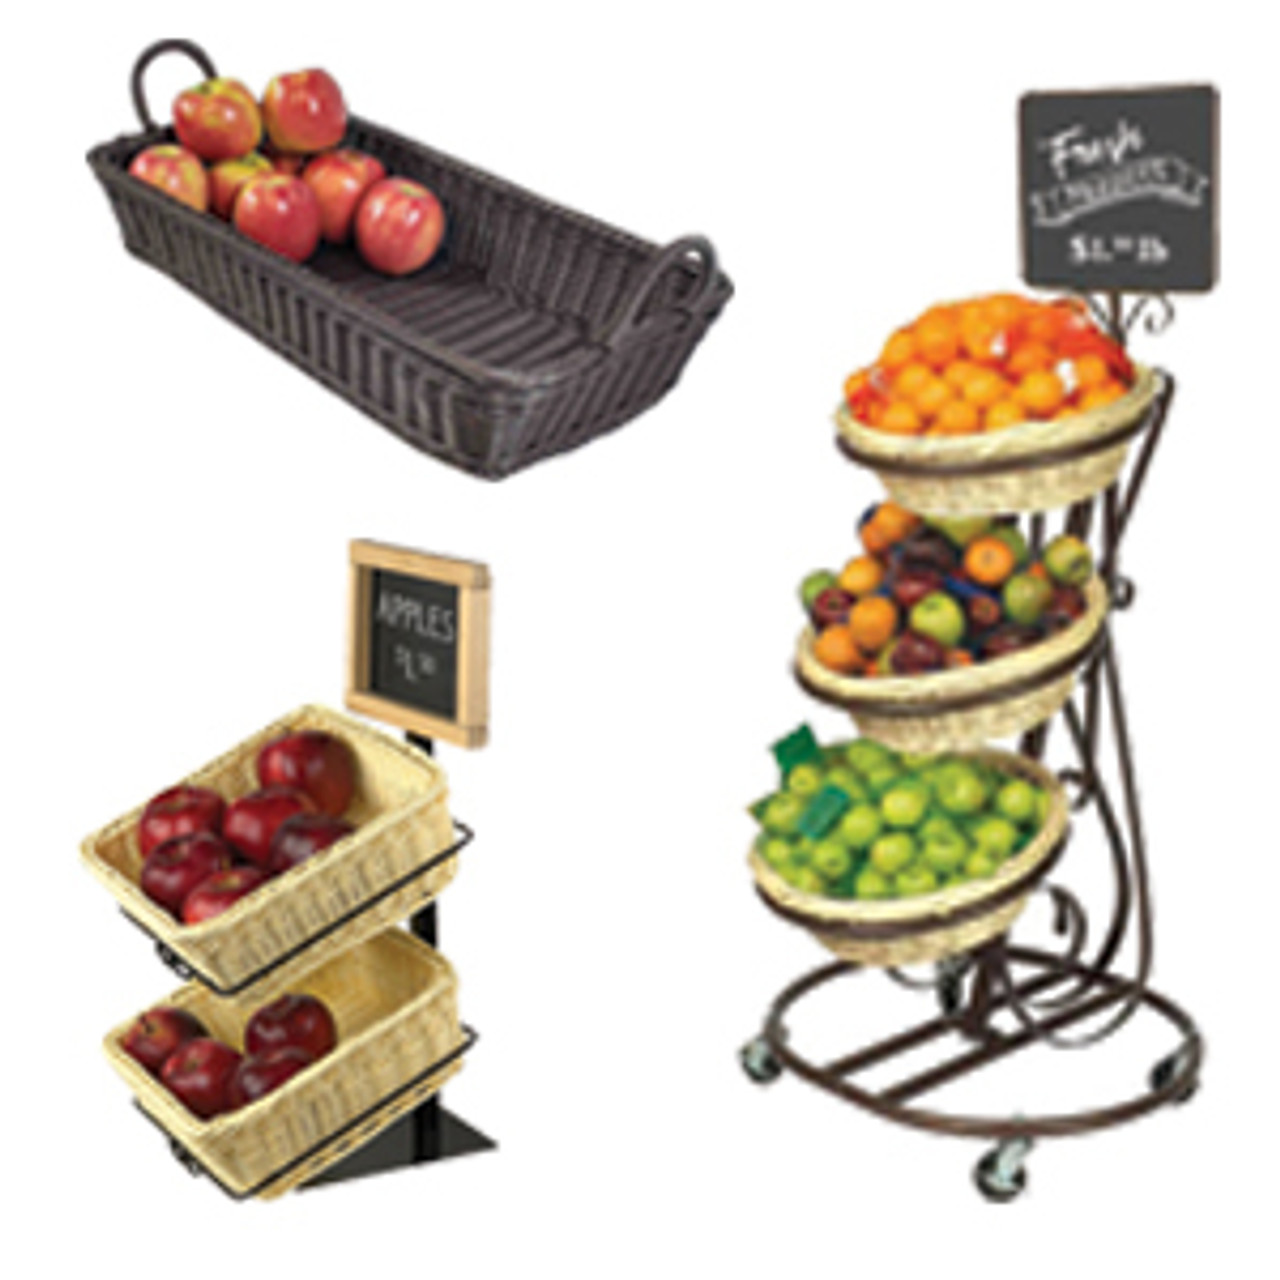 display-baskets-for-produce